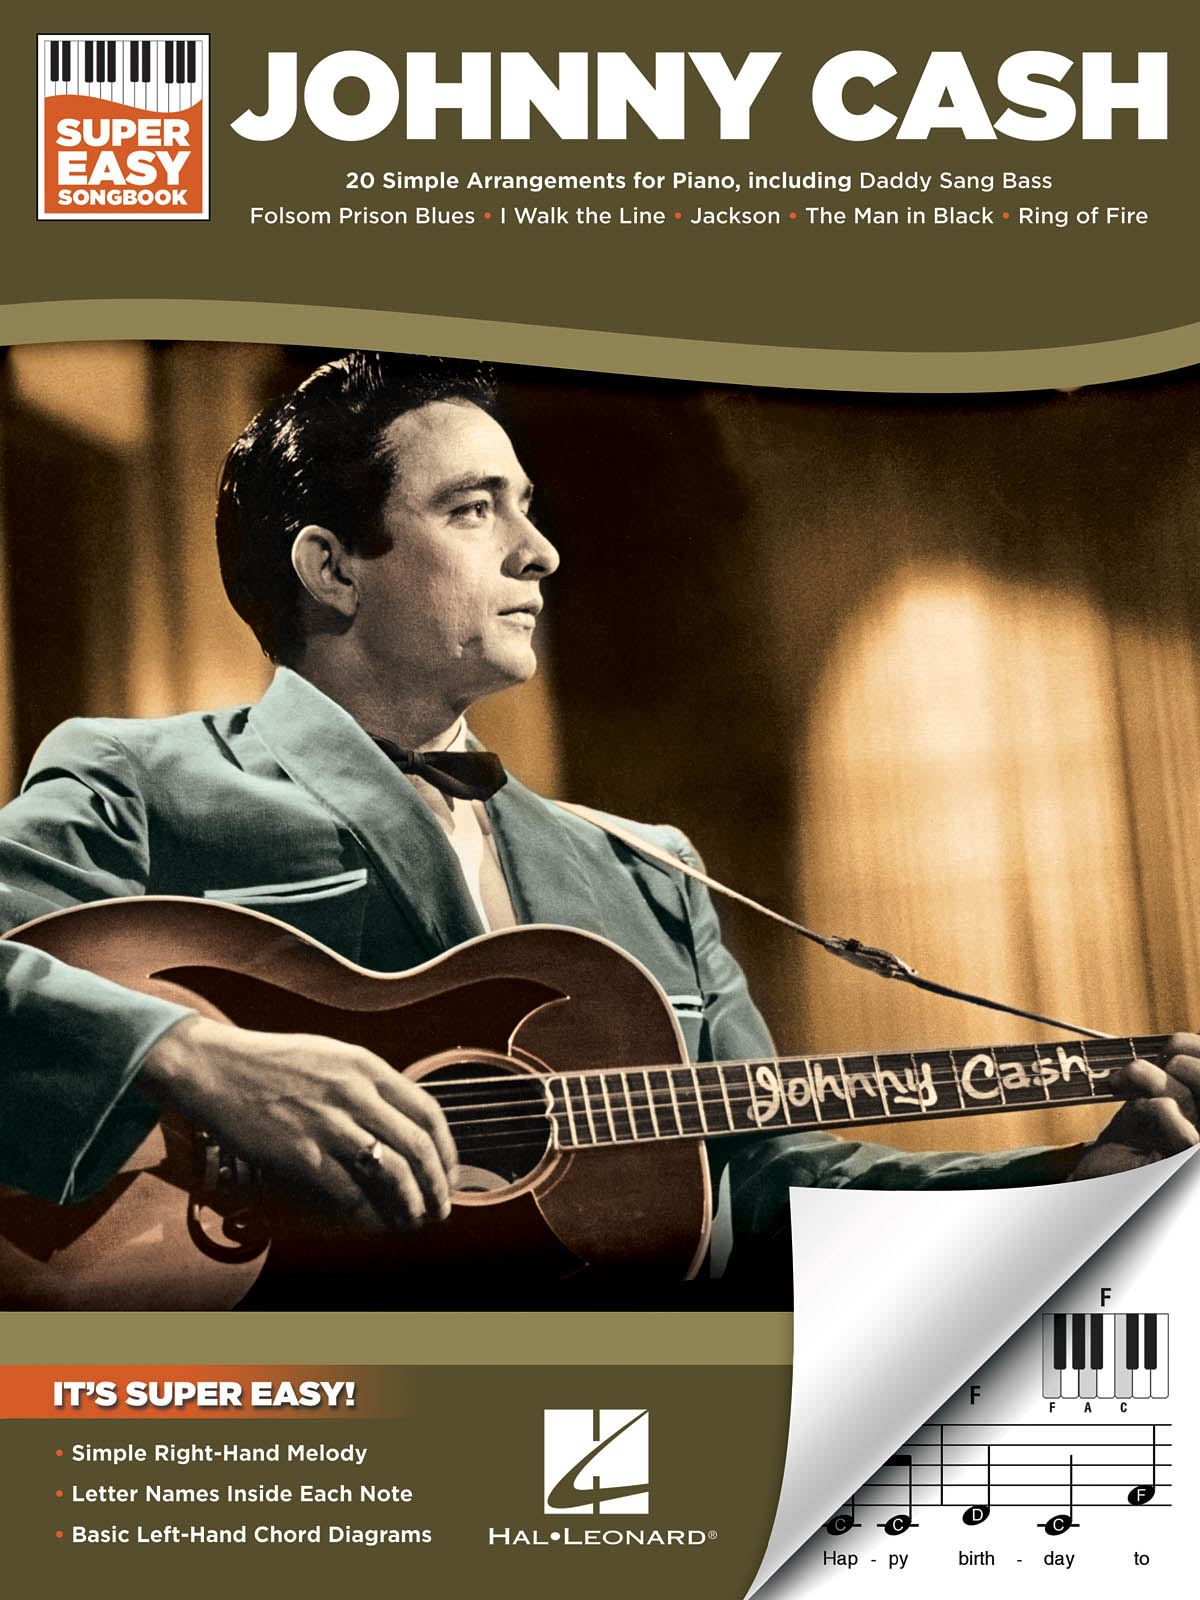 Johnny Cash: Johnny Cash - Super Easy Songbook: Piano: Artist Songbook